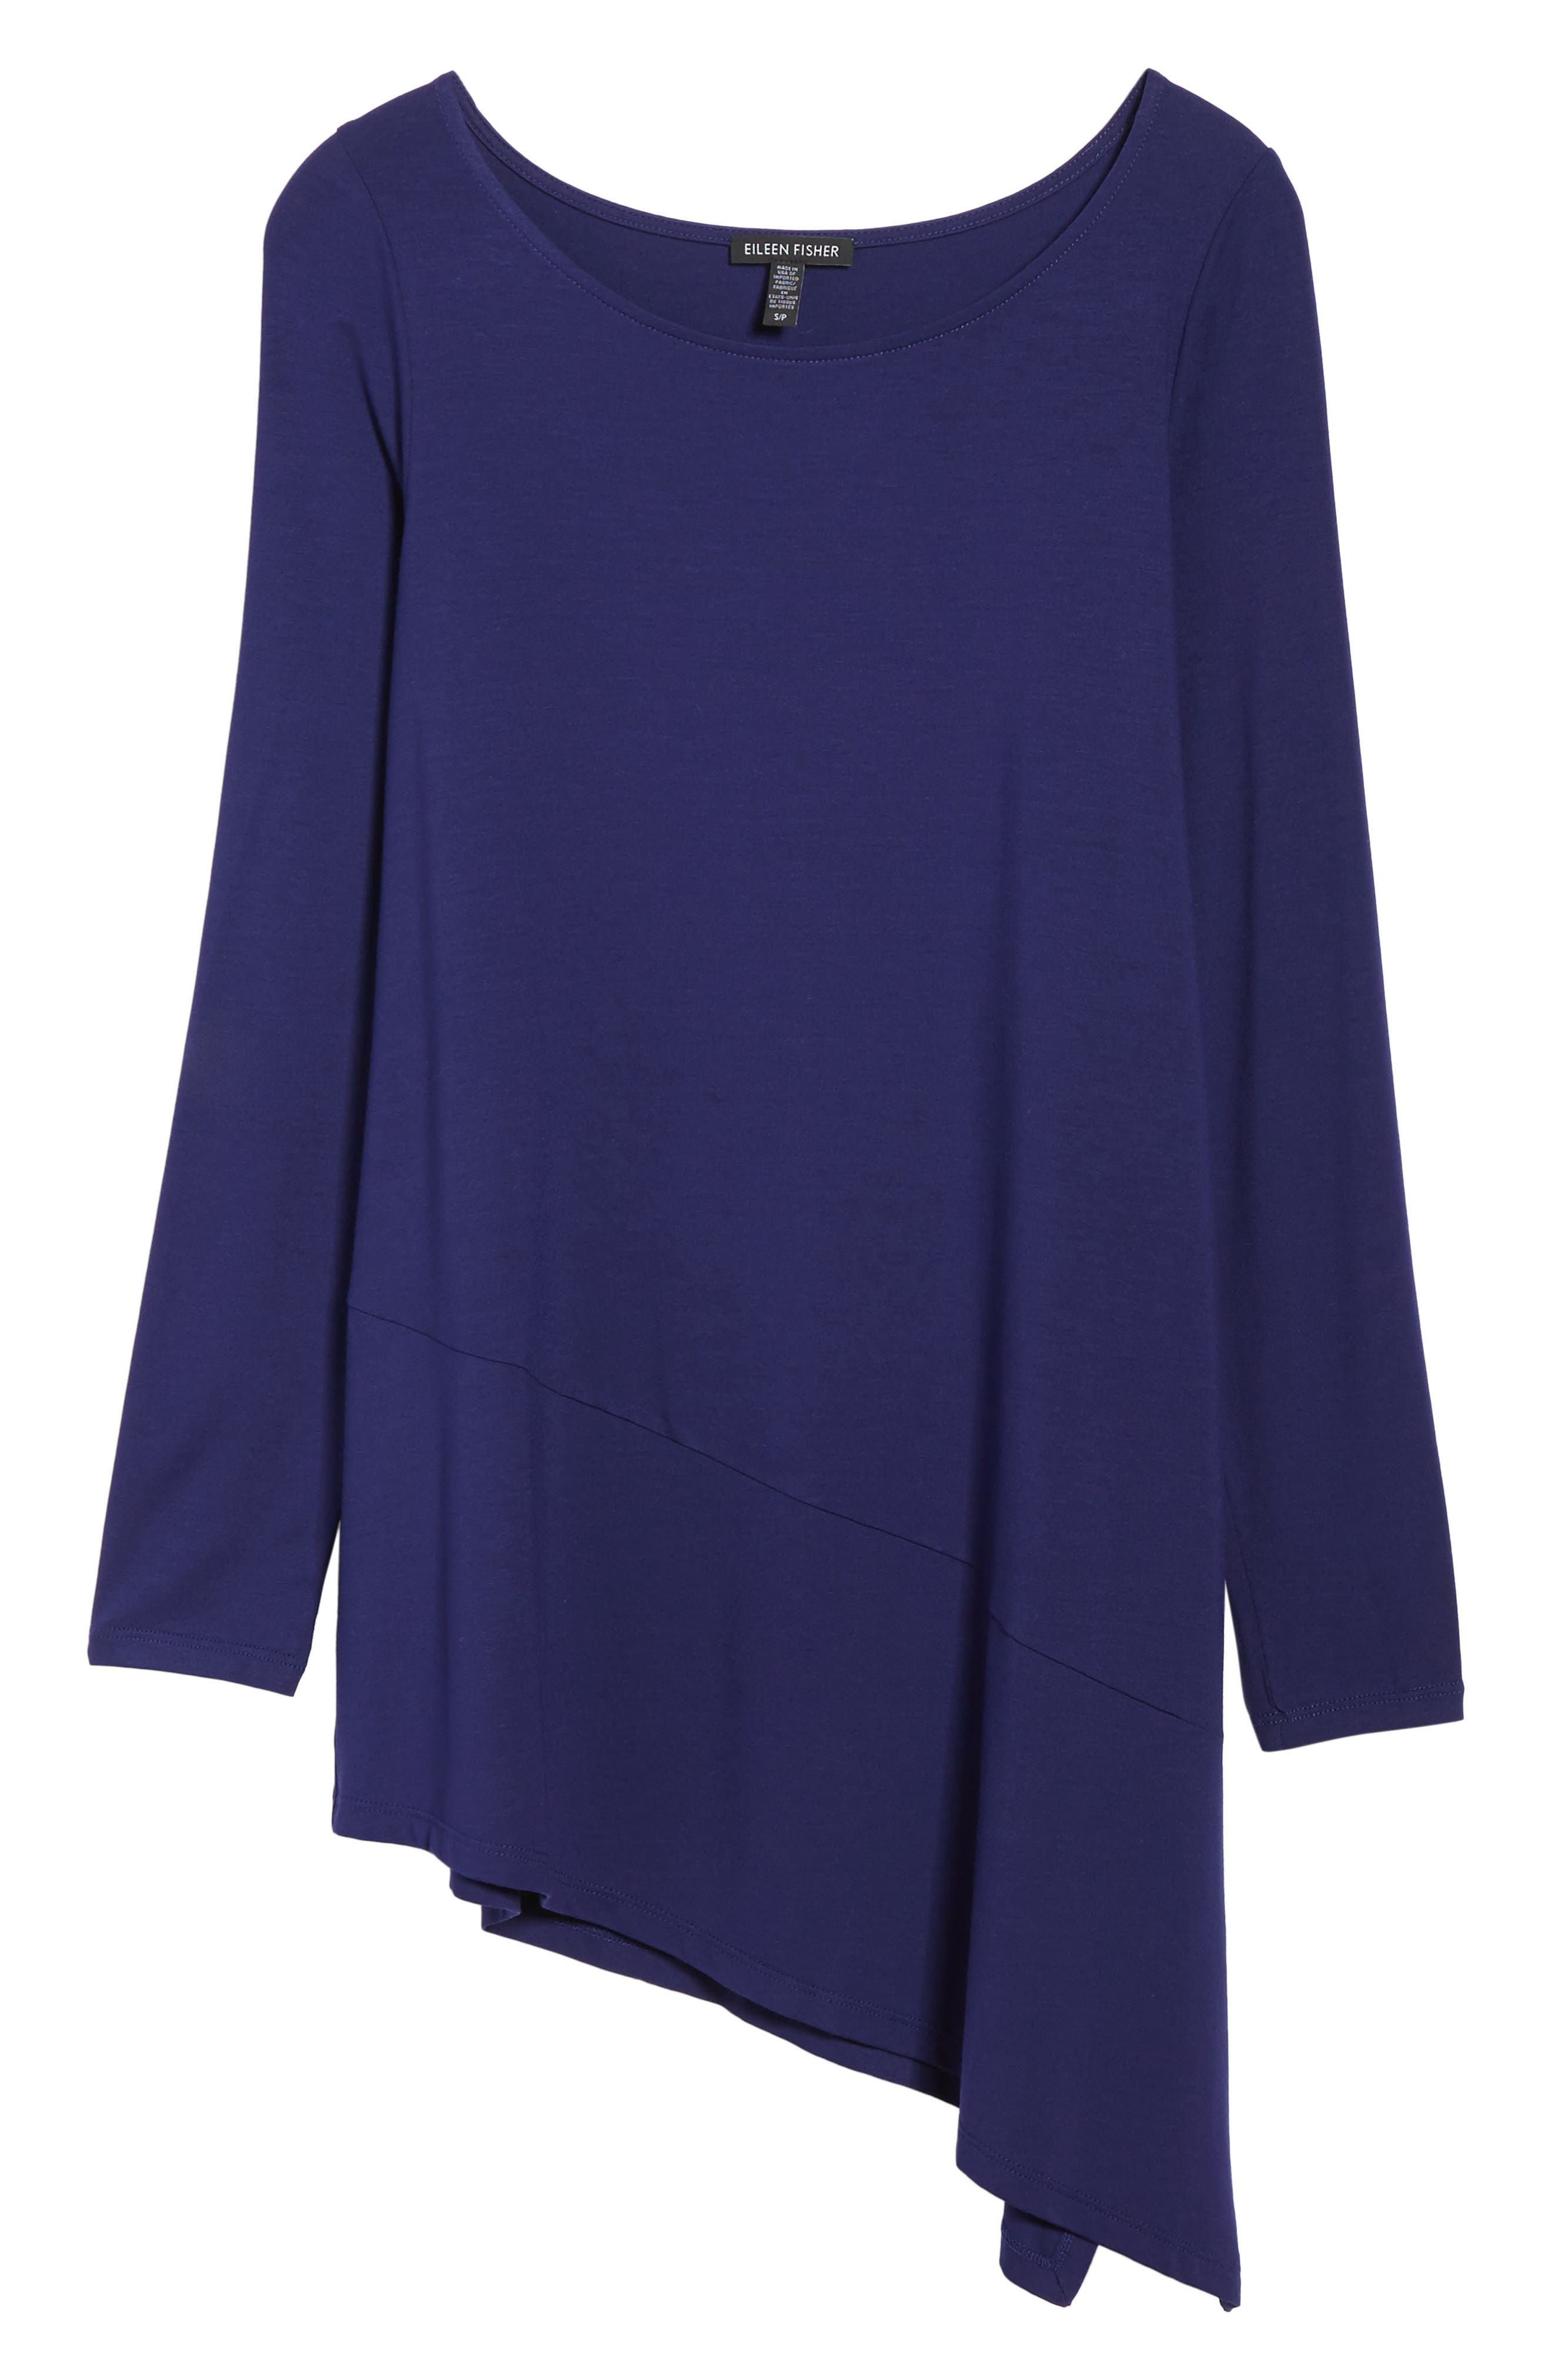 Alternate Image 1 Selected - Eileen Fisher Bateau Neck Asymmetrical Jersey Tunic (Regular & Petite) (Online Only)